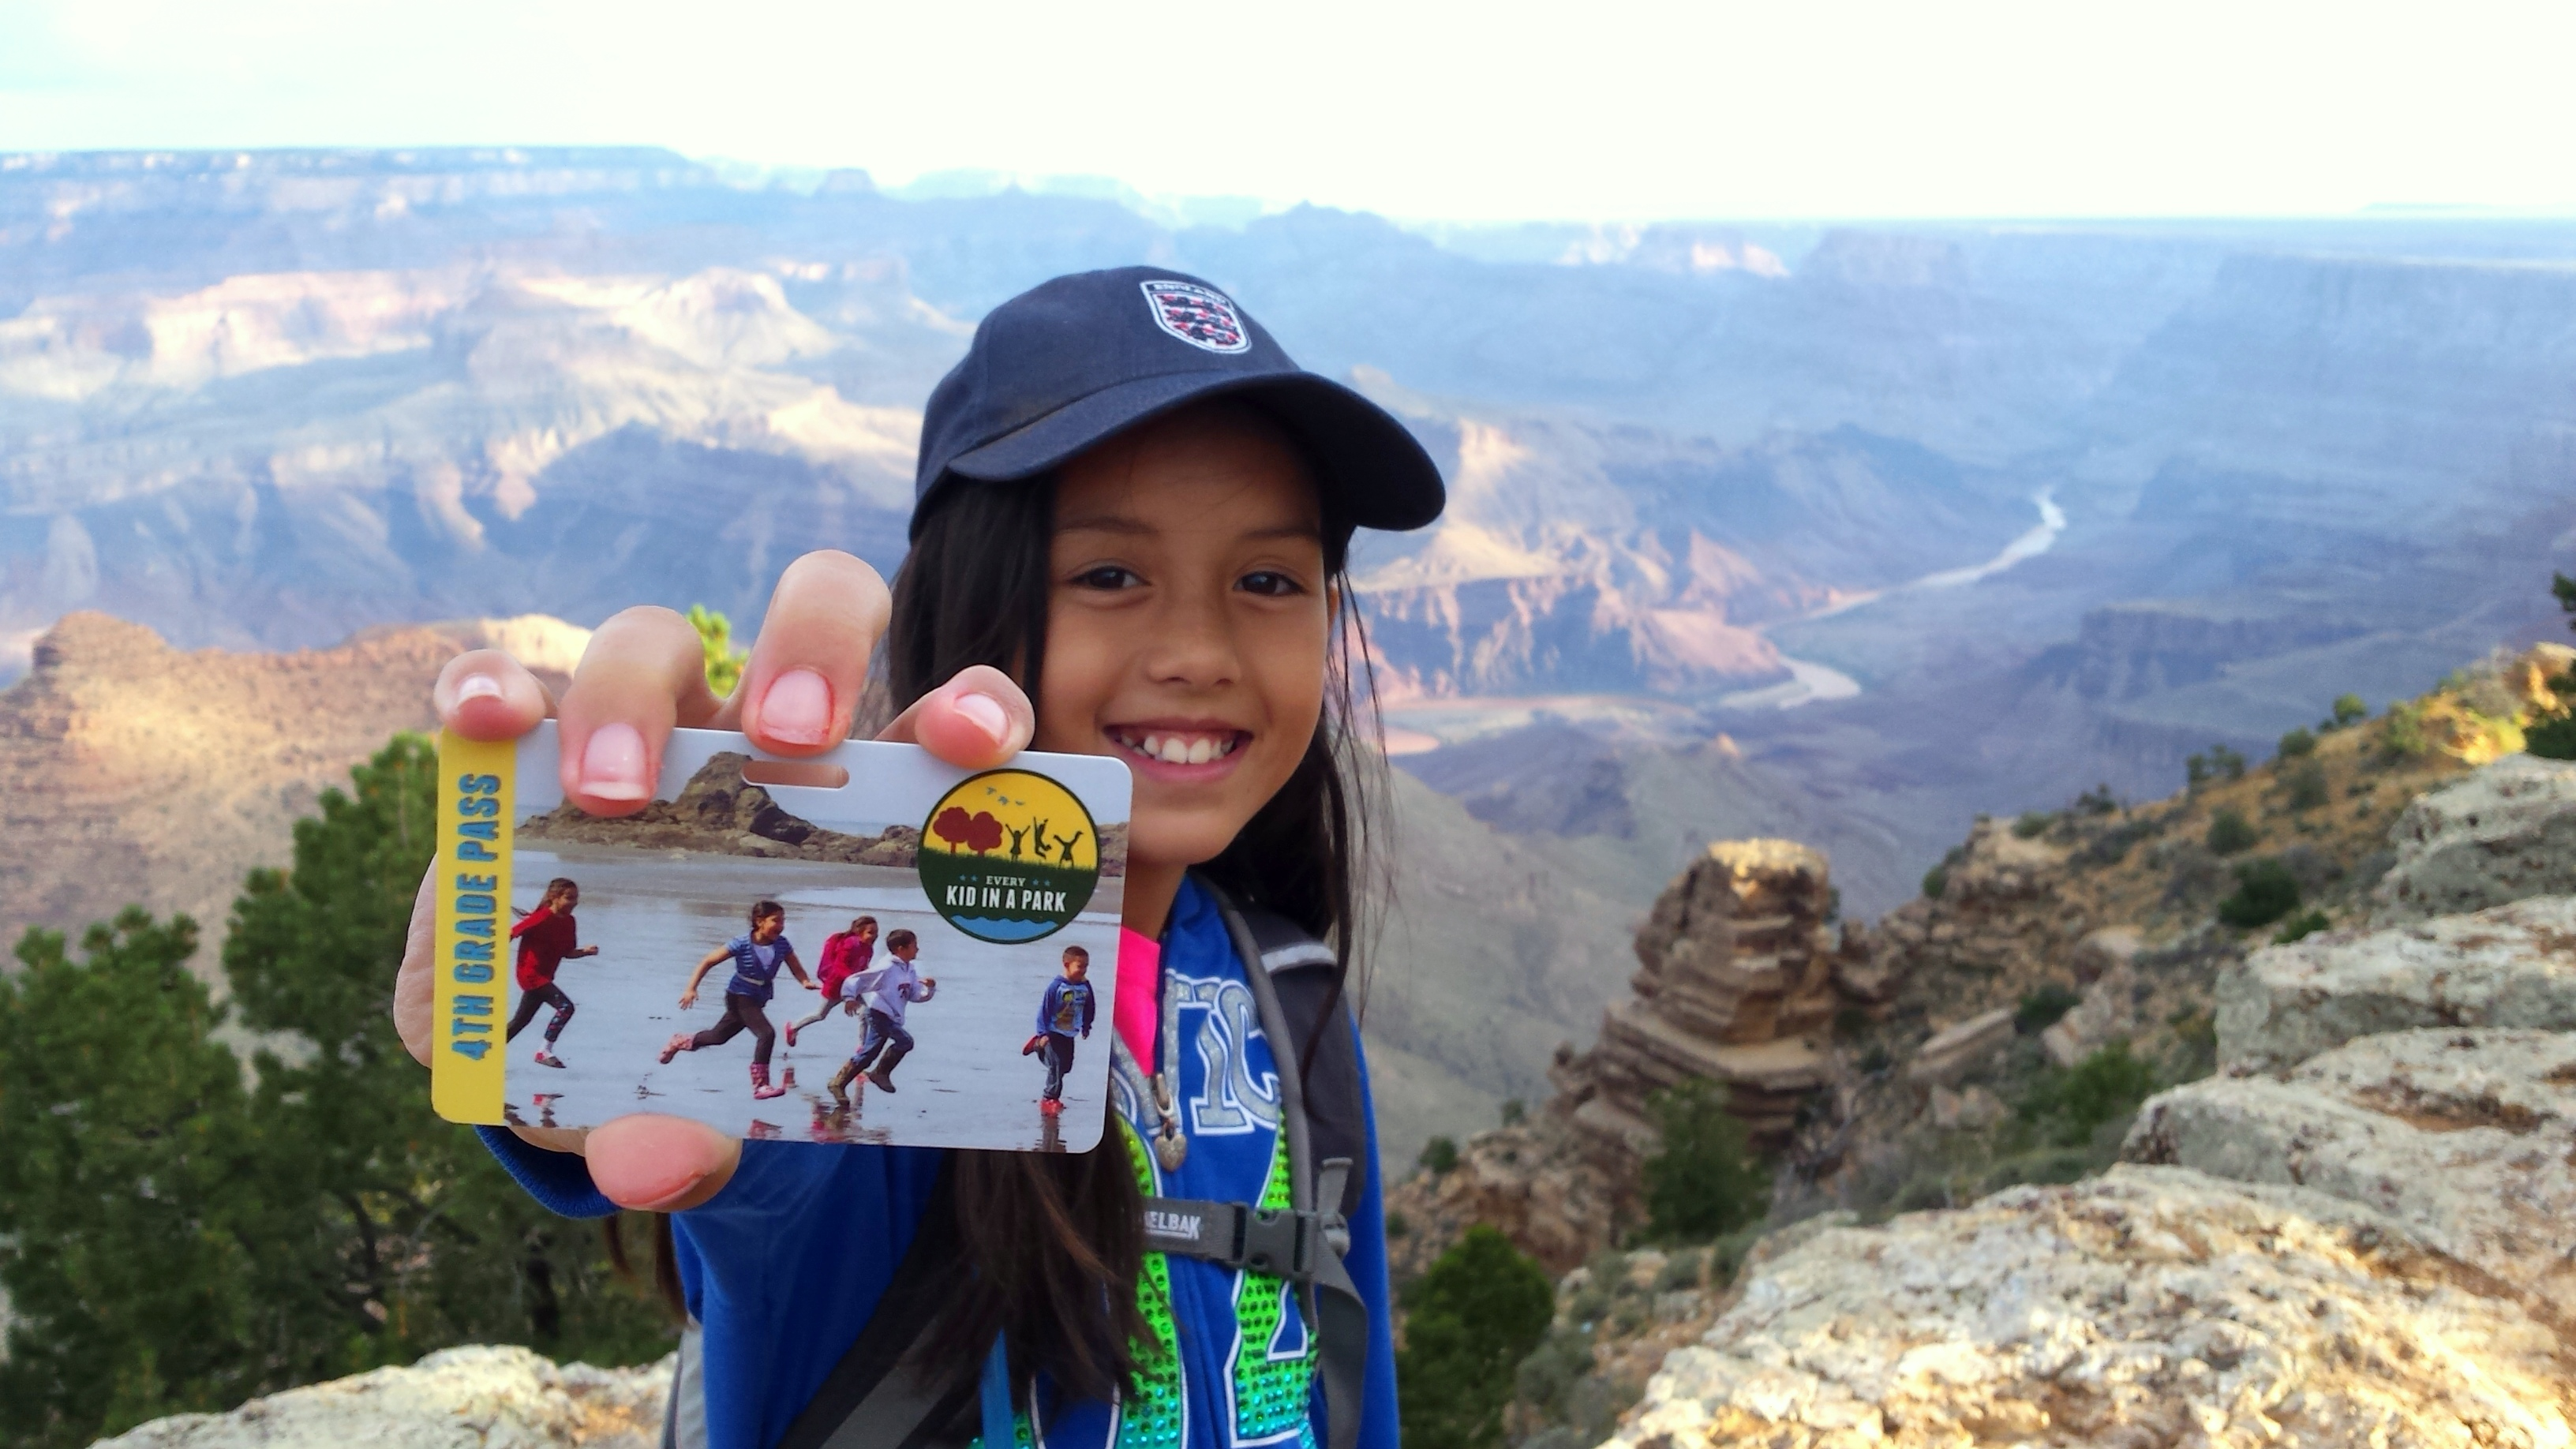 Tips for Exploring the National Parks with Kids by Jessica Nave for Hike it Baby